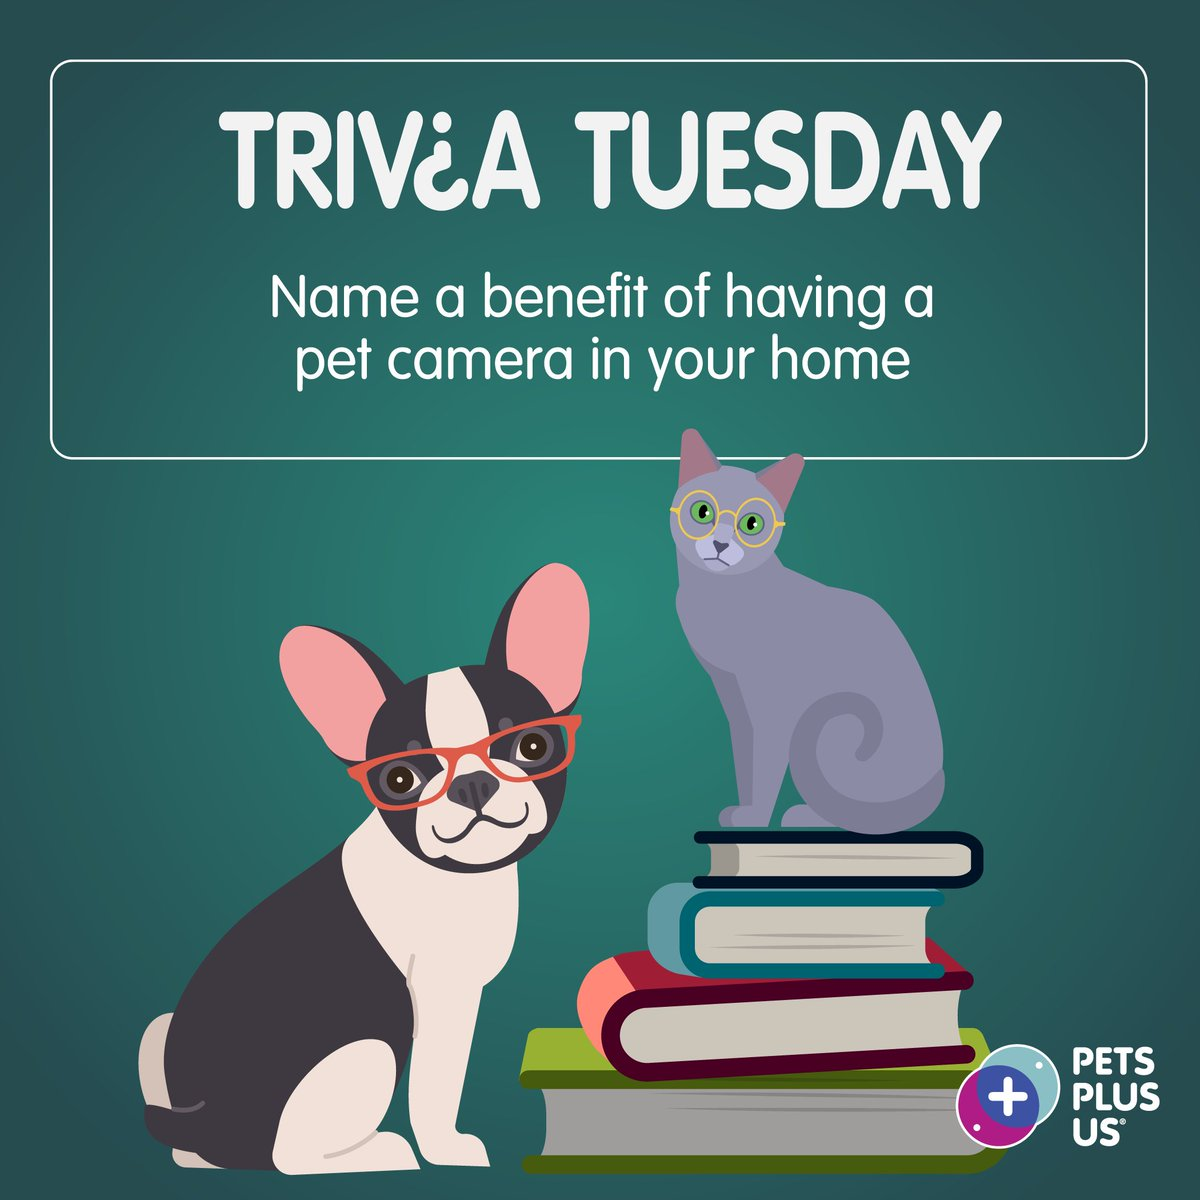 #Win a $25 PetSmart GC! Answer the question & RT to enter our #TriviaTuesday Giveaway. Open to CND residents only. Contest ends at 11:59PM EST. Note, this contest is in no way sponsored, endorsed or administered by, or associated with, Facebook, Instagram and/or Twitter. https://t.co/Vb0qCD8NFY